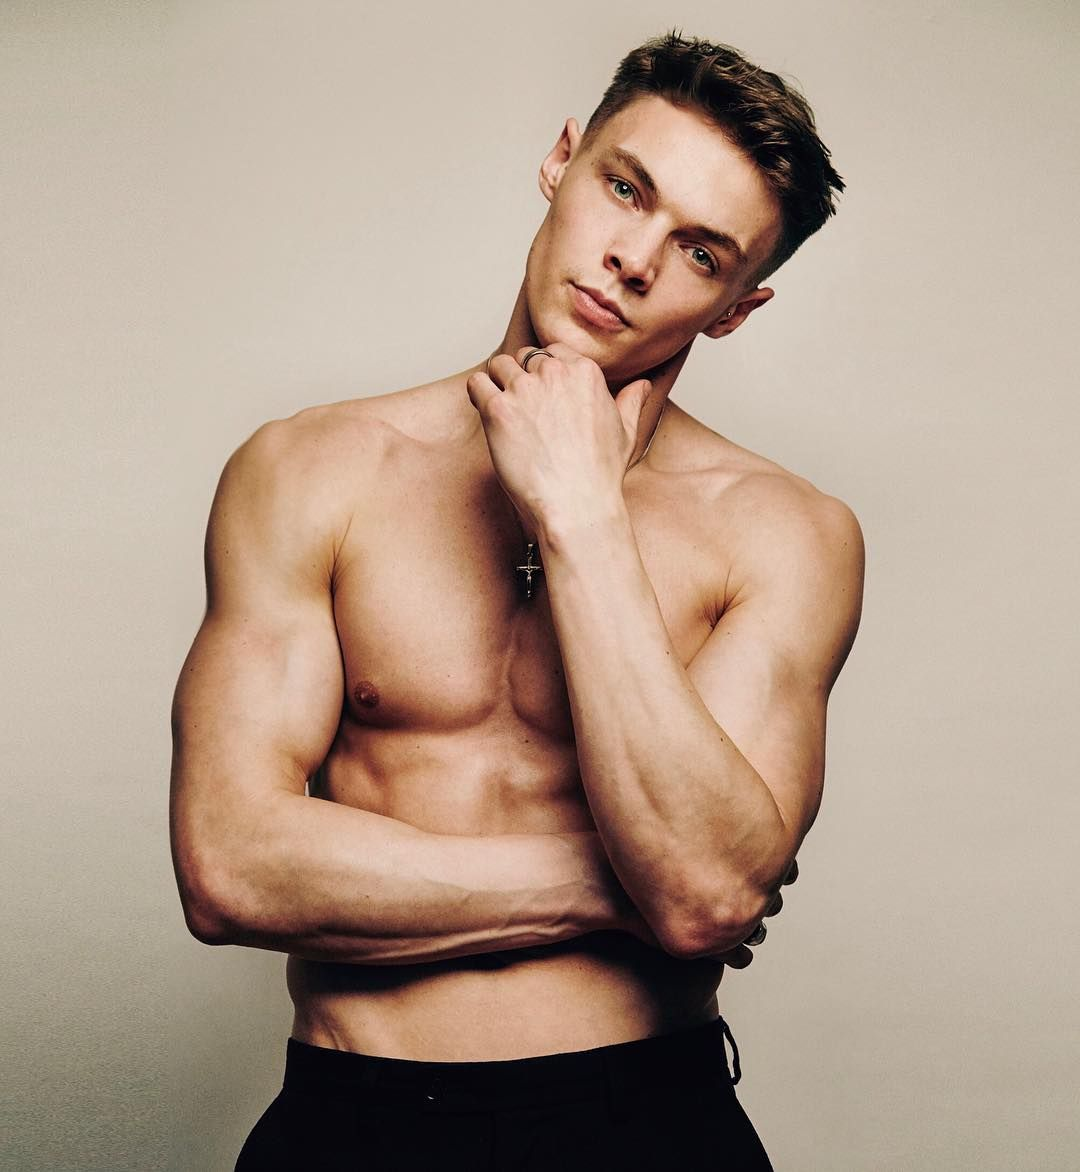 Image may contain: Casa Amor, Love Island, Ben Whatson, model, Islander, cast, contestant, rumours, start, date,  Arm, Man, Person, Human